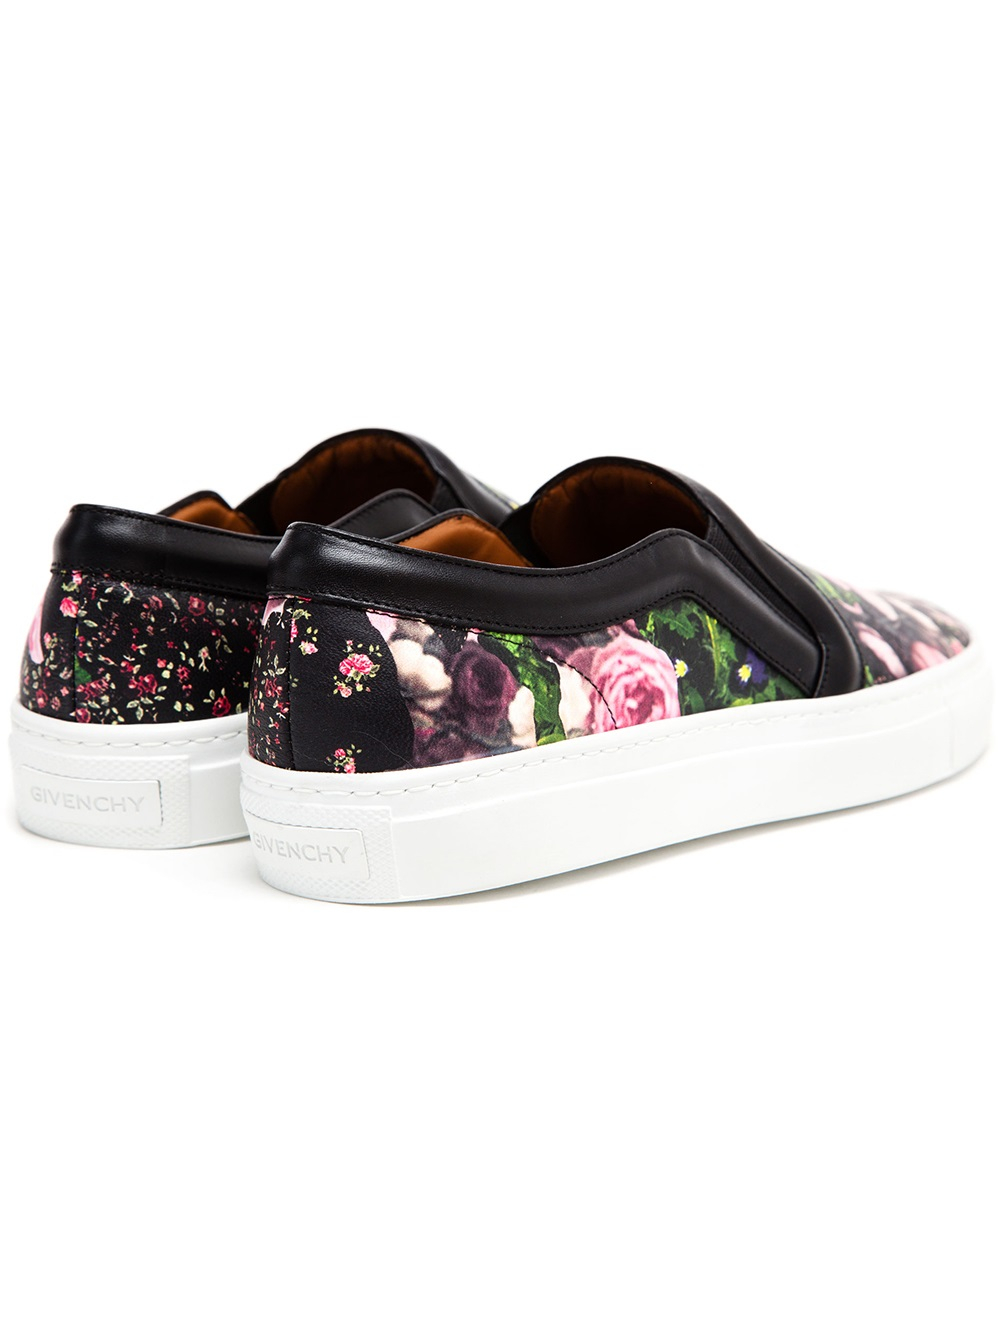 a049665e90 Lyst - Givenchy Floral Printed Leather Skater Shoes in Black